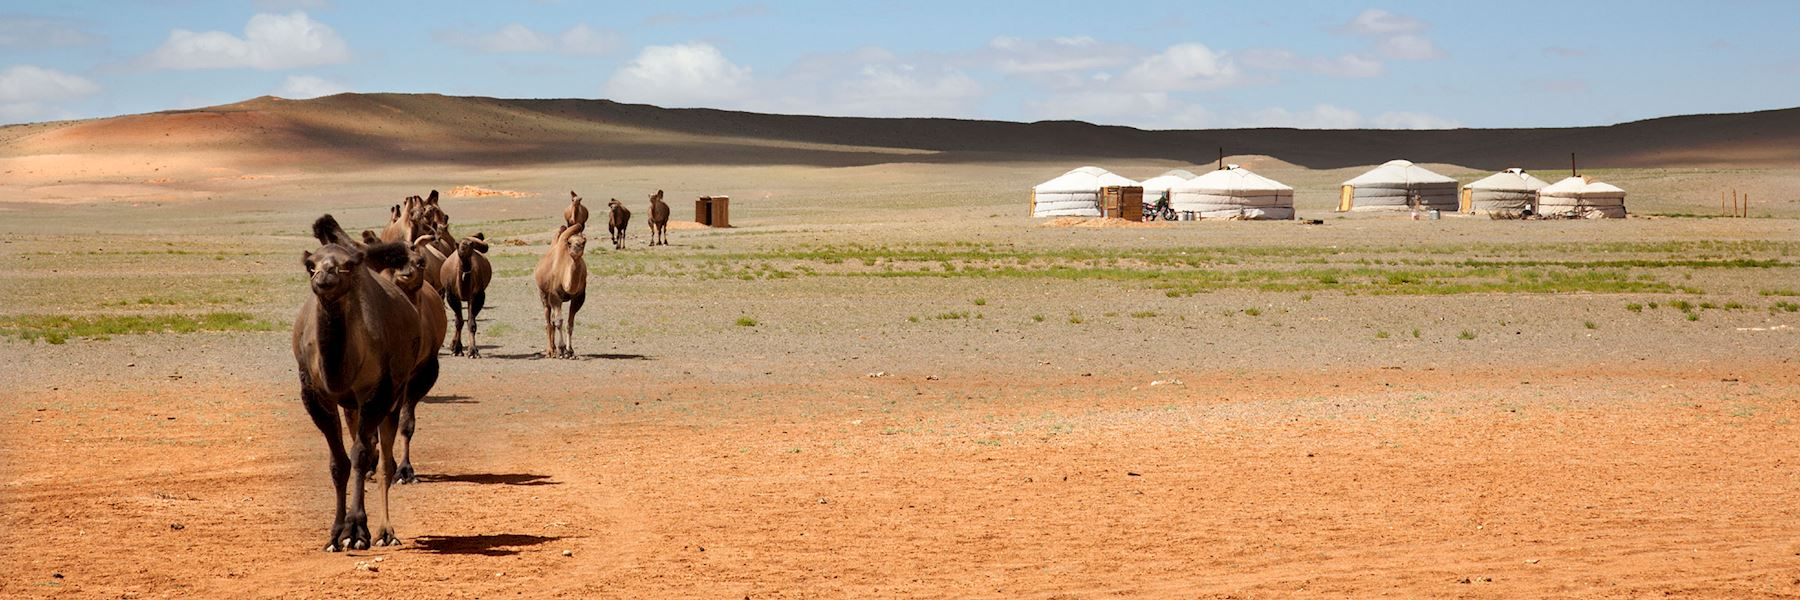 visit the gobi desert on a trip to mongolia audley travel